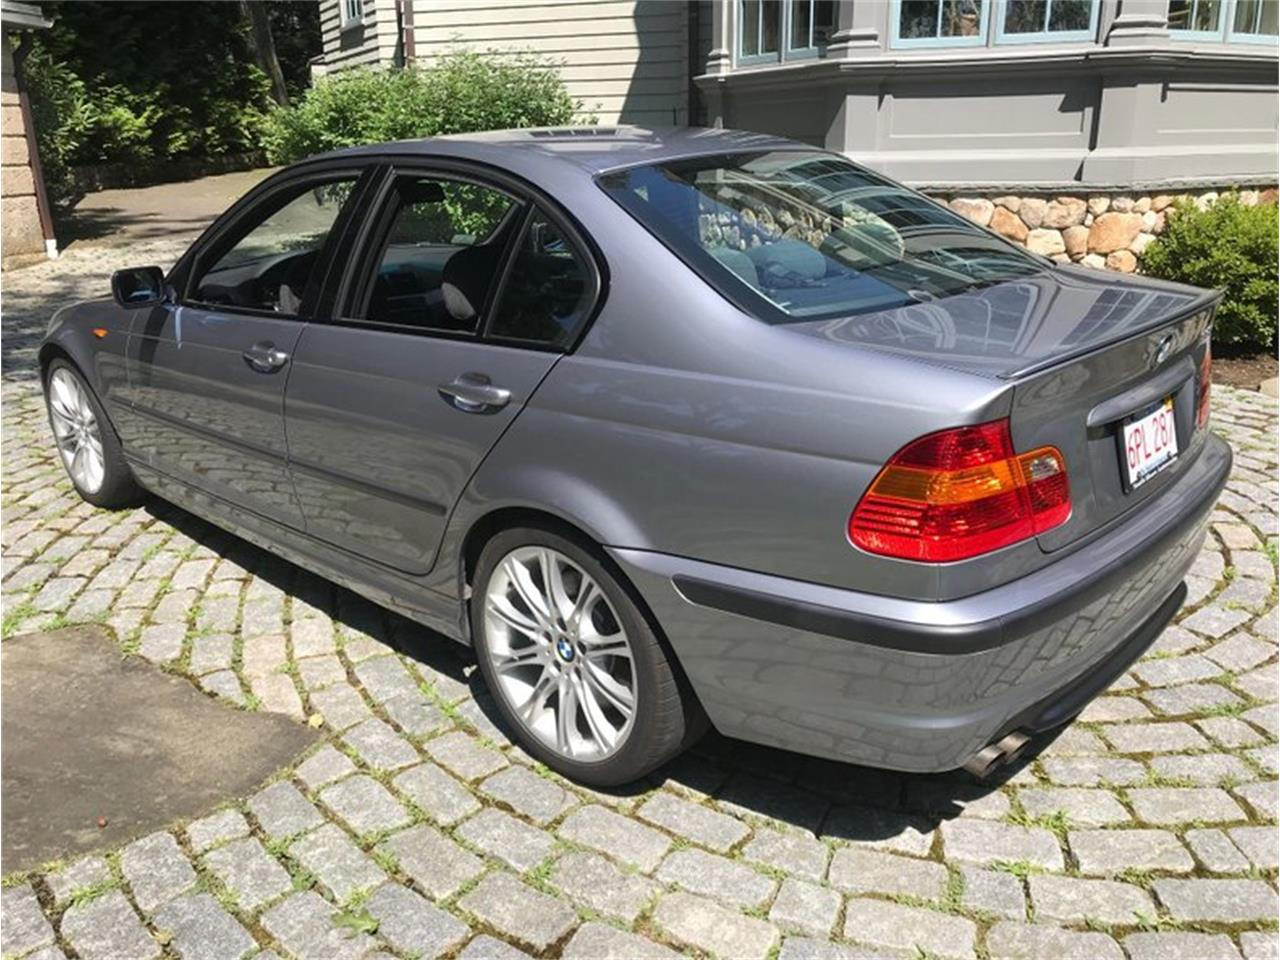 2003 BMW 3 Series for sale in Holliston, MA – photo 13